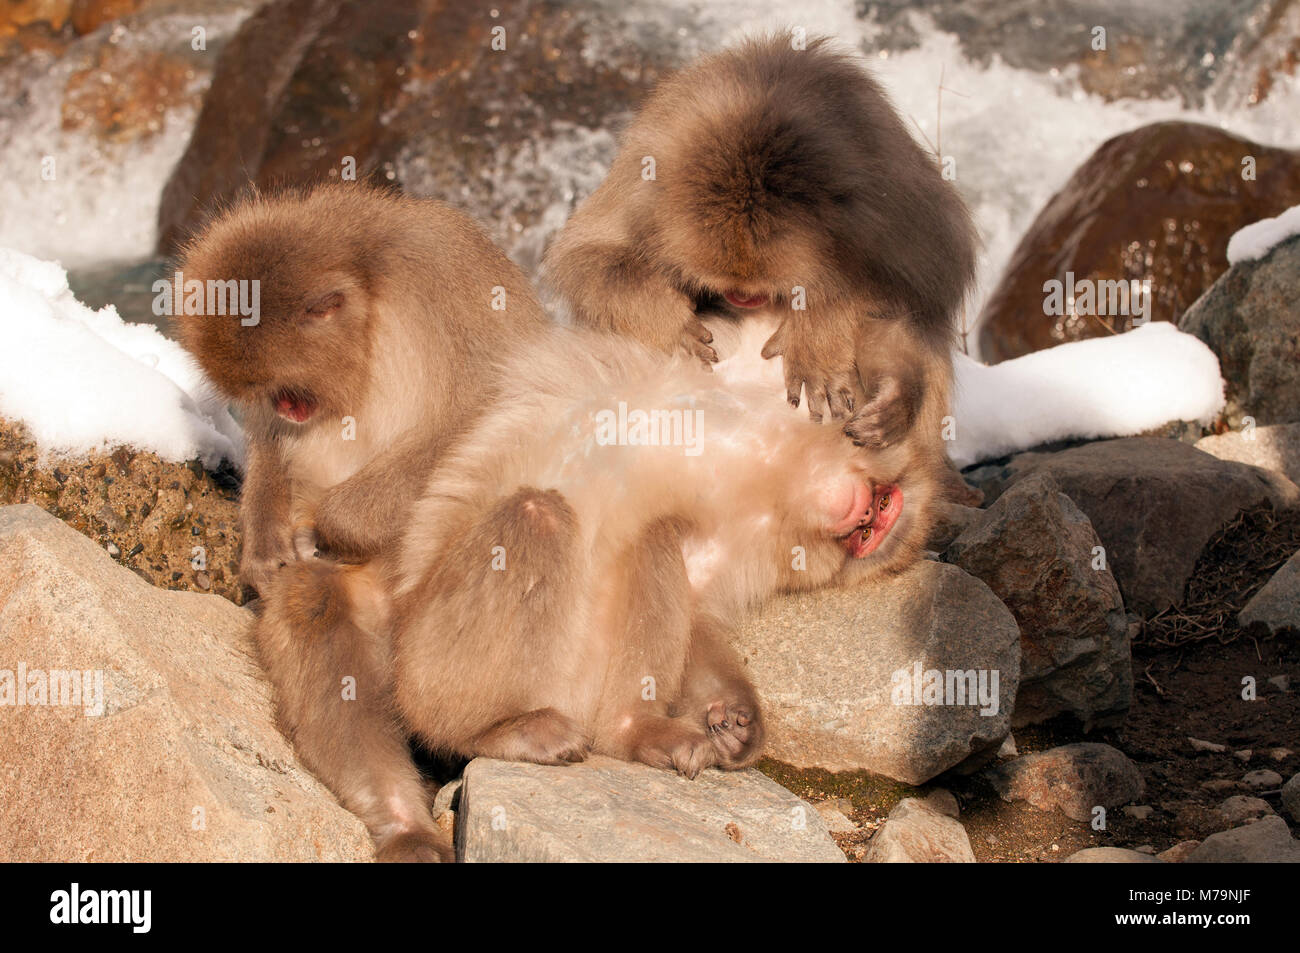 Japanese macaque or snow japanese monkey (Macaca fuscata) family, Japan Stock Photo